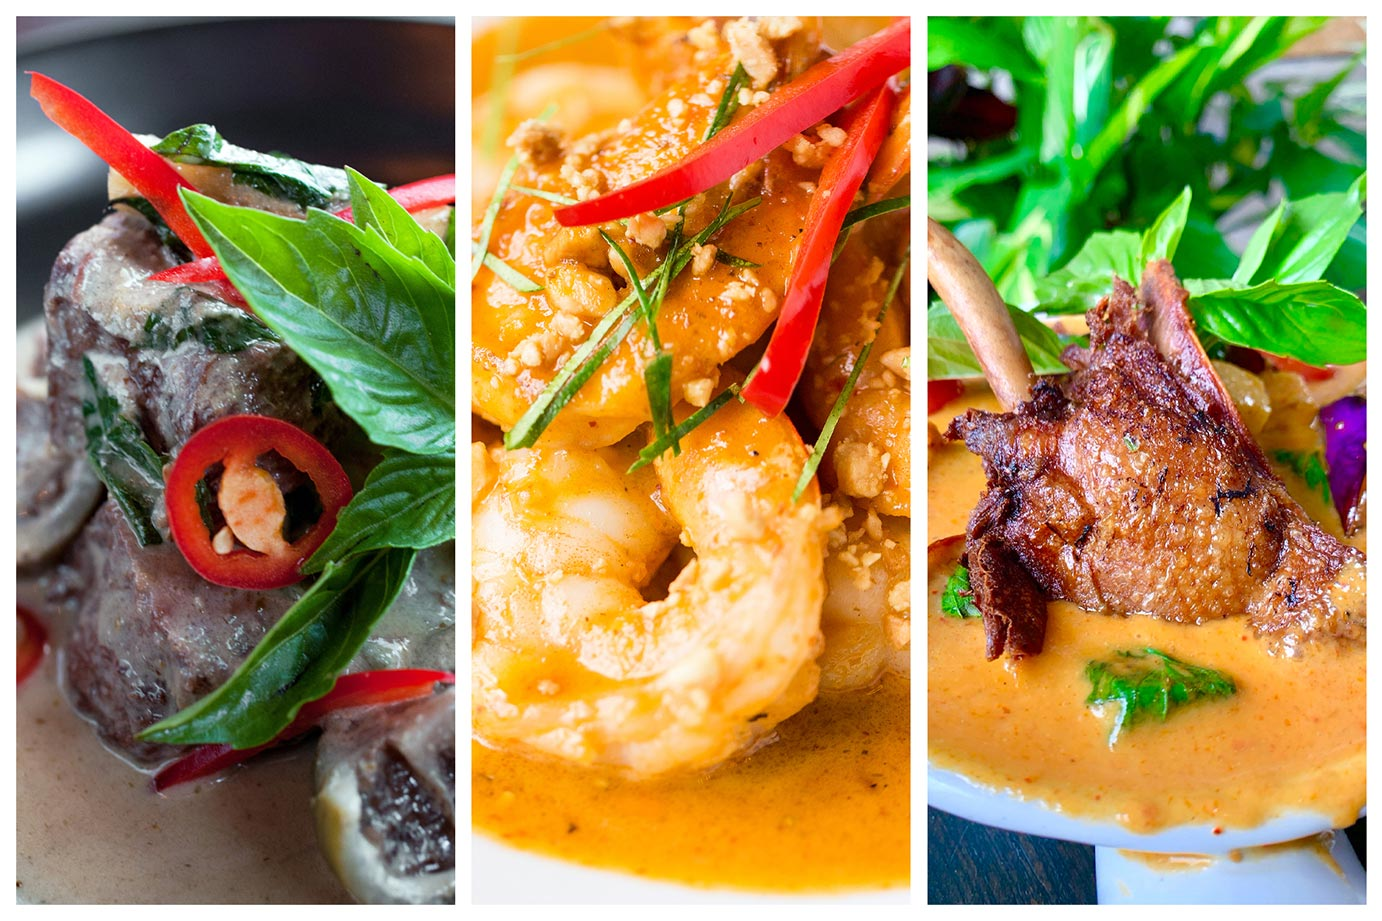 Songkran's 3 signature curries